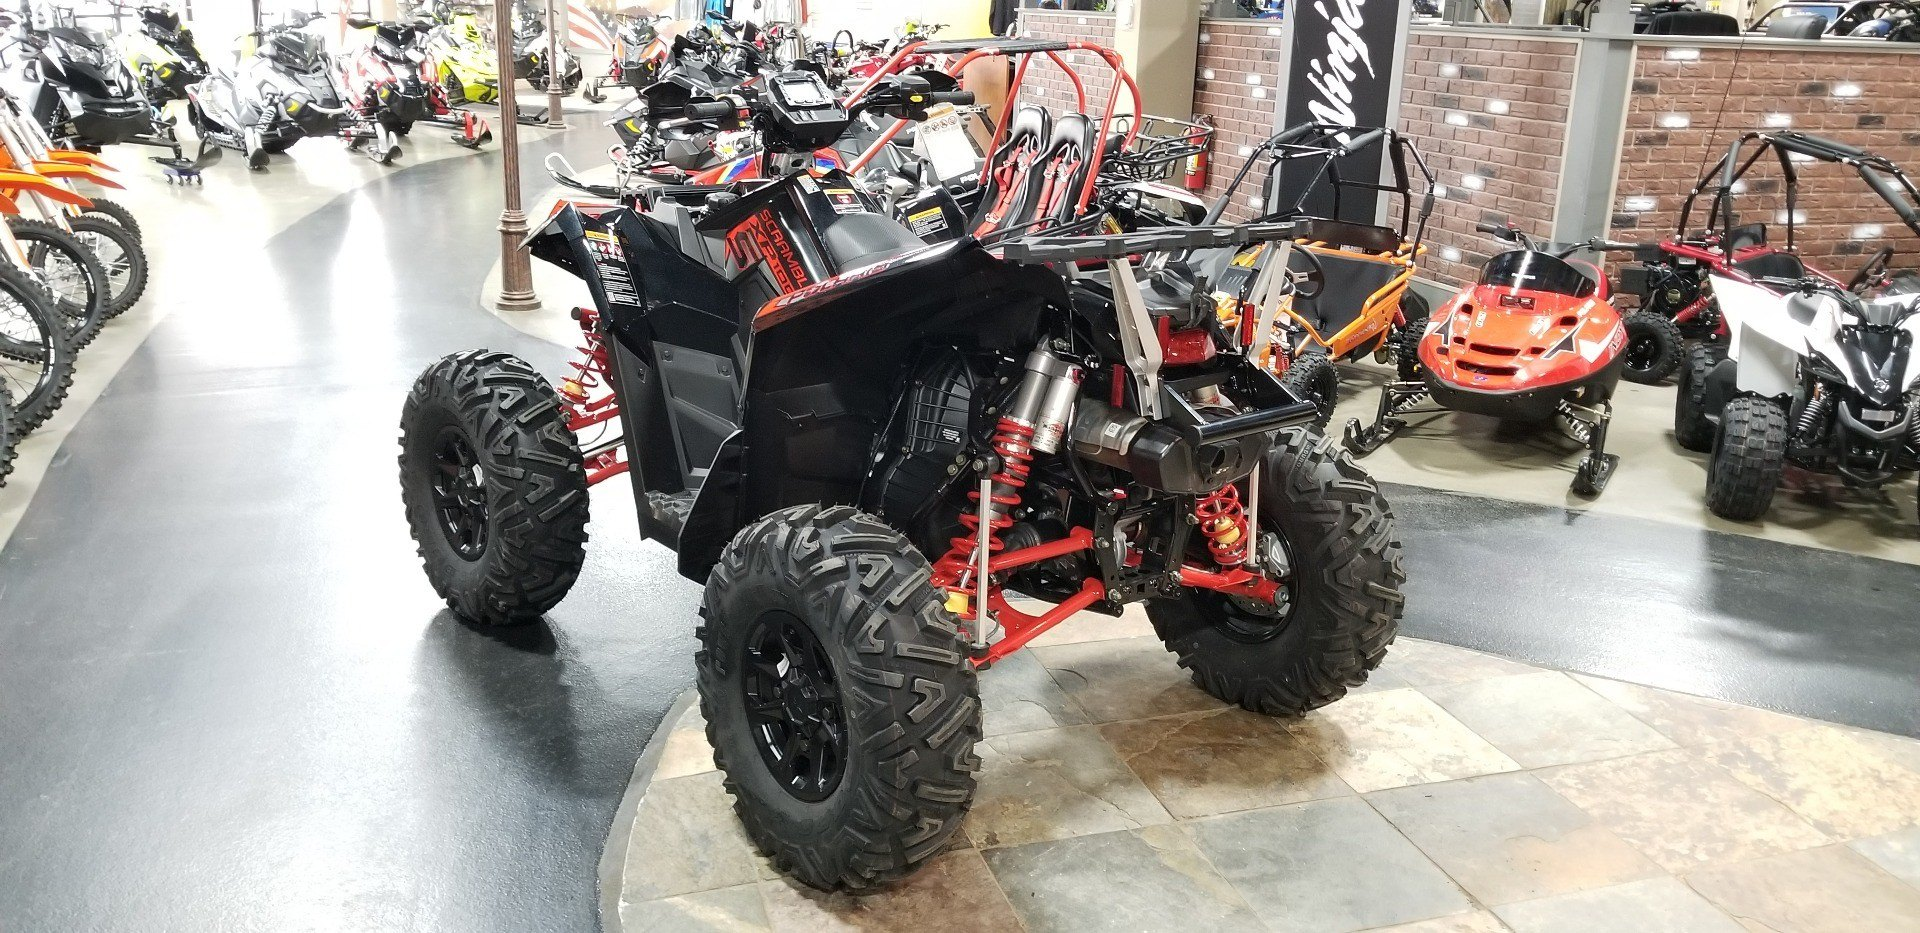 2020 Polaris Scrambler XP 1000 S in Dimondale, Michigan - Photo 6